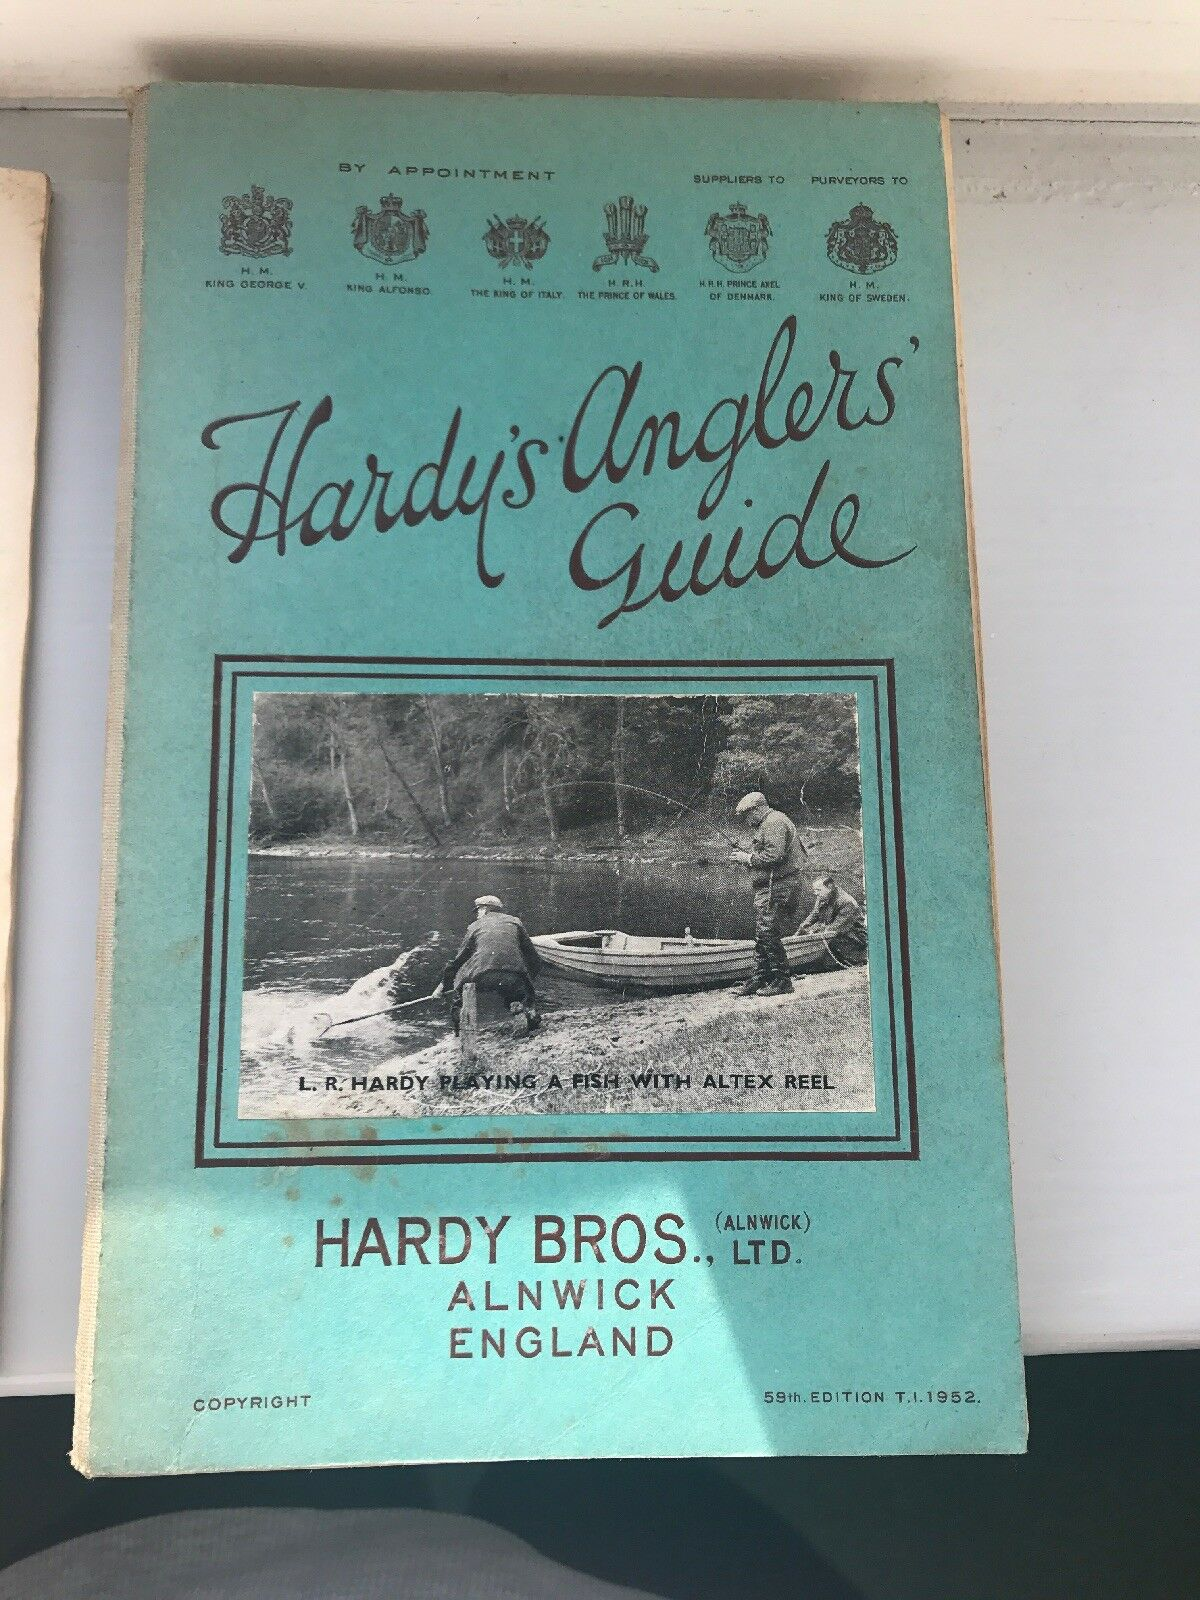 VERY GOOD SCARCE VINTAGE HARDY ANGLERS GUIDE 59th Edition 1952